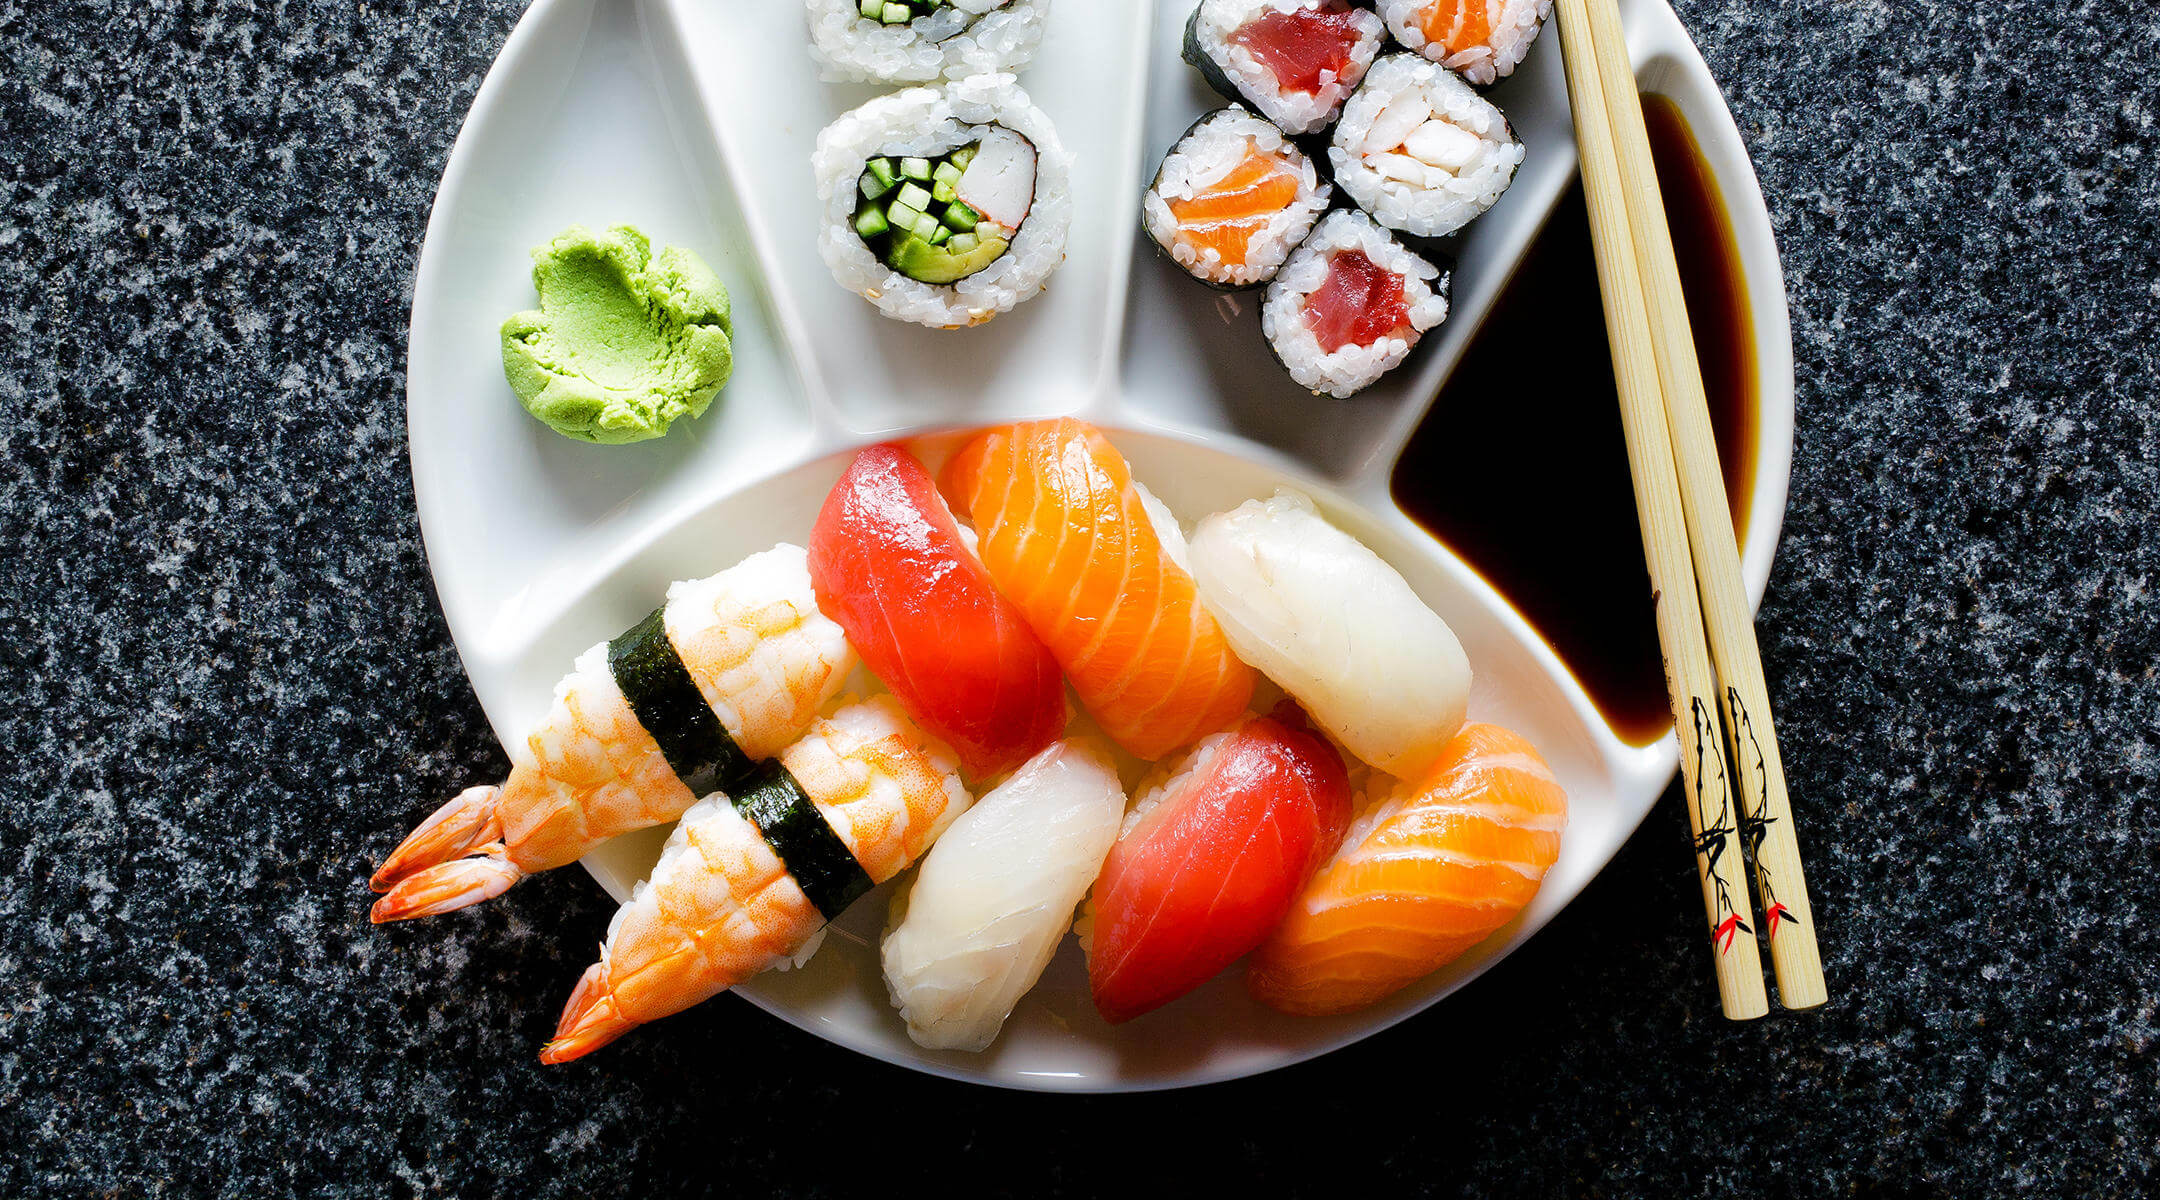 RAW FISH IN PREGNANCY